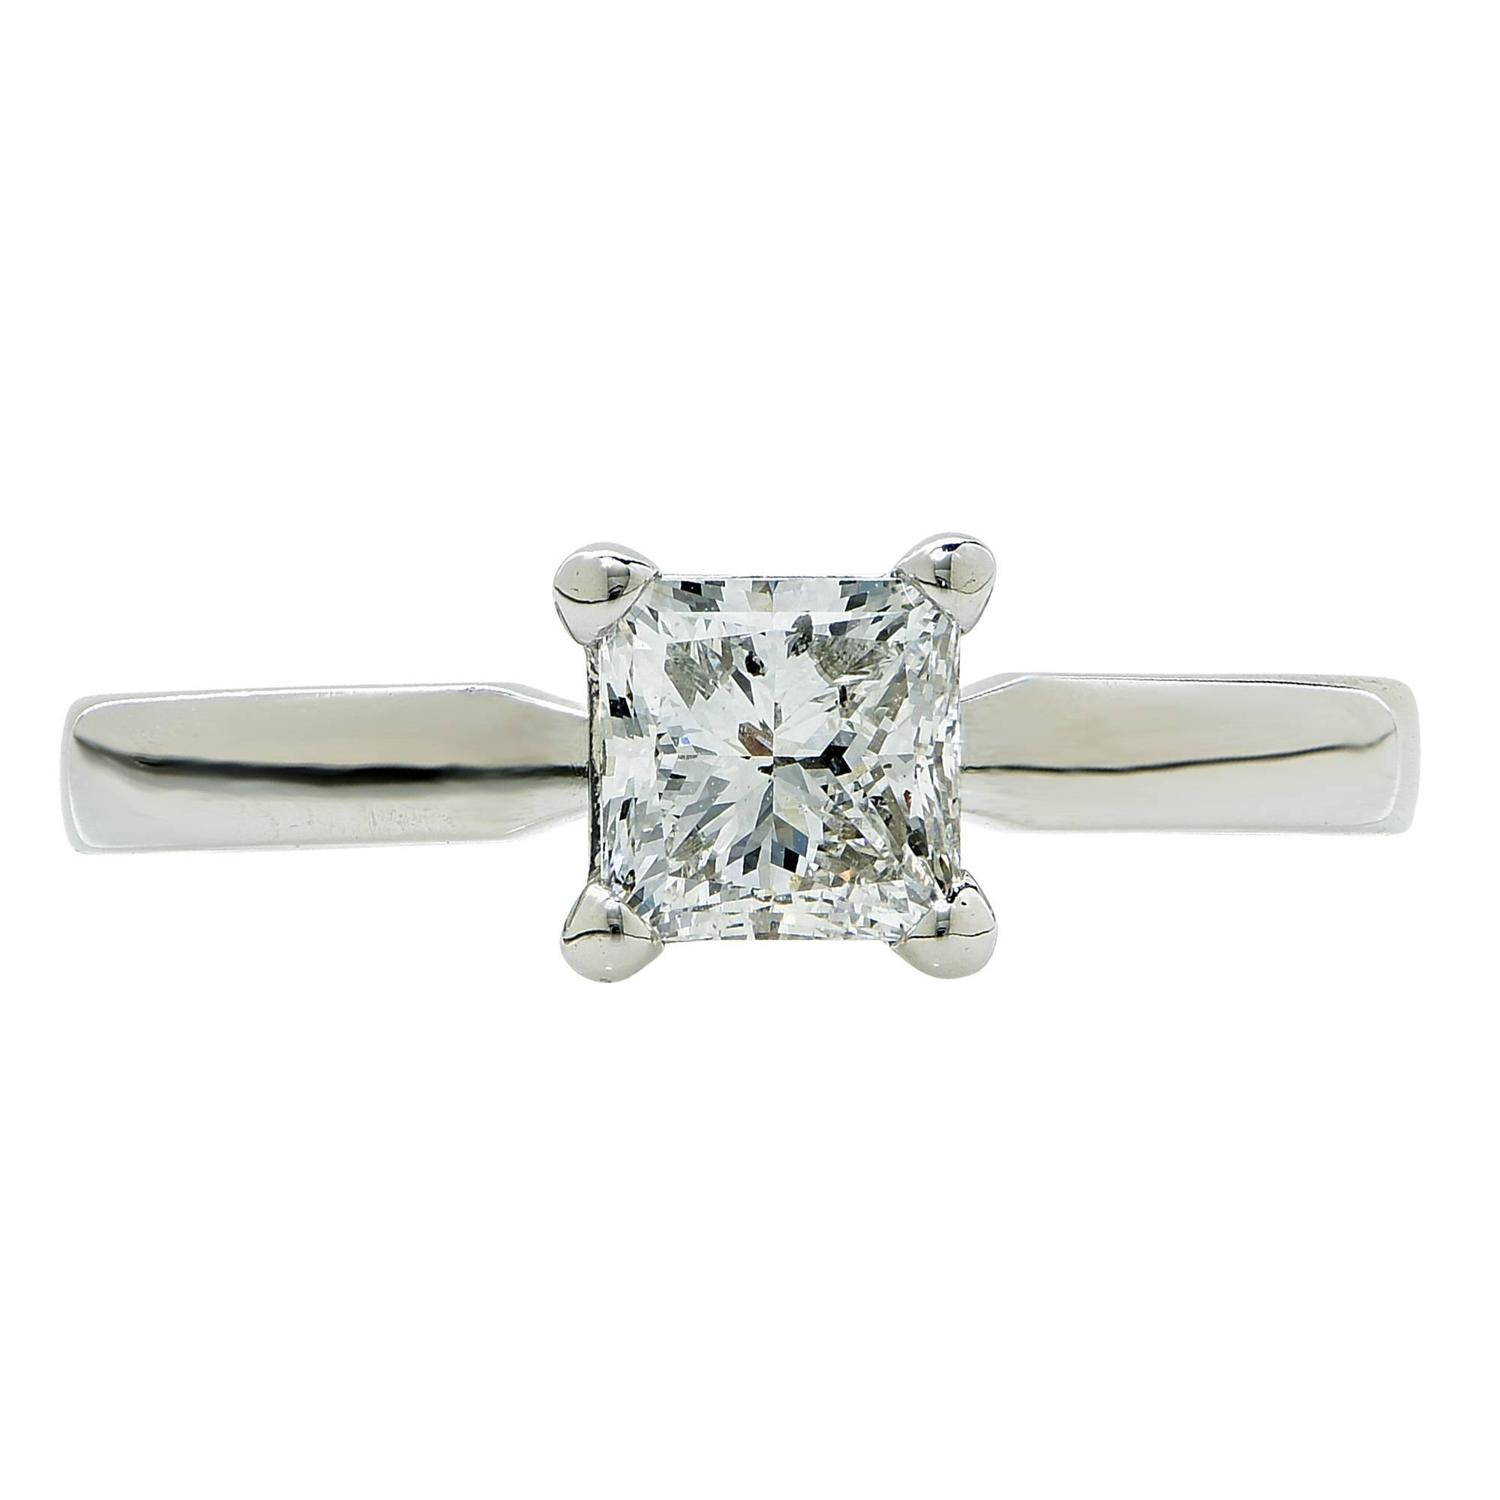 1 carat f si2 princess cut solitaire engagement ring for sale at 1stdibs